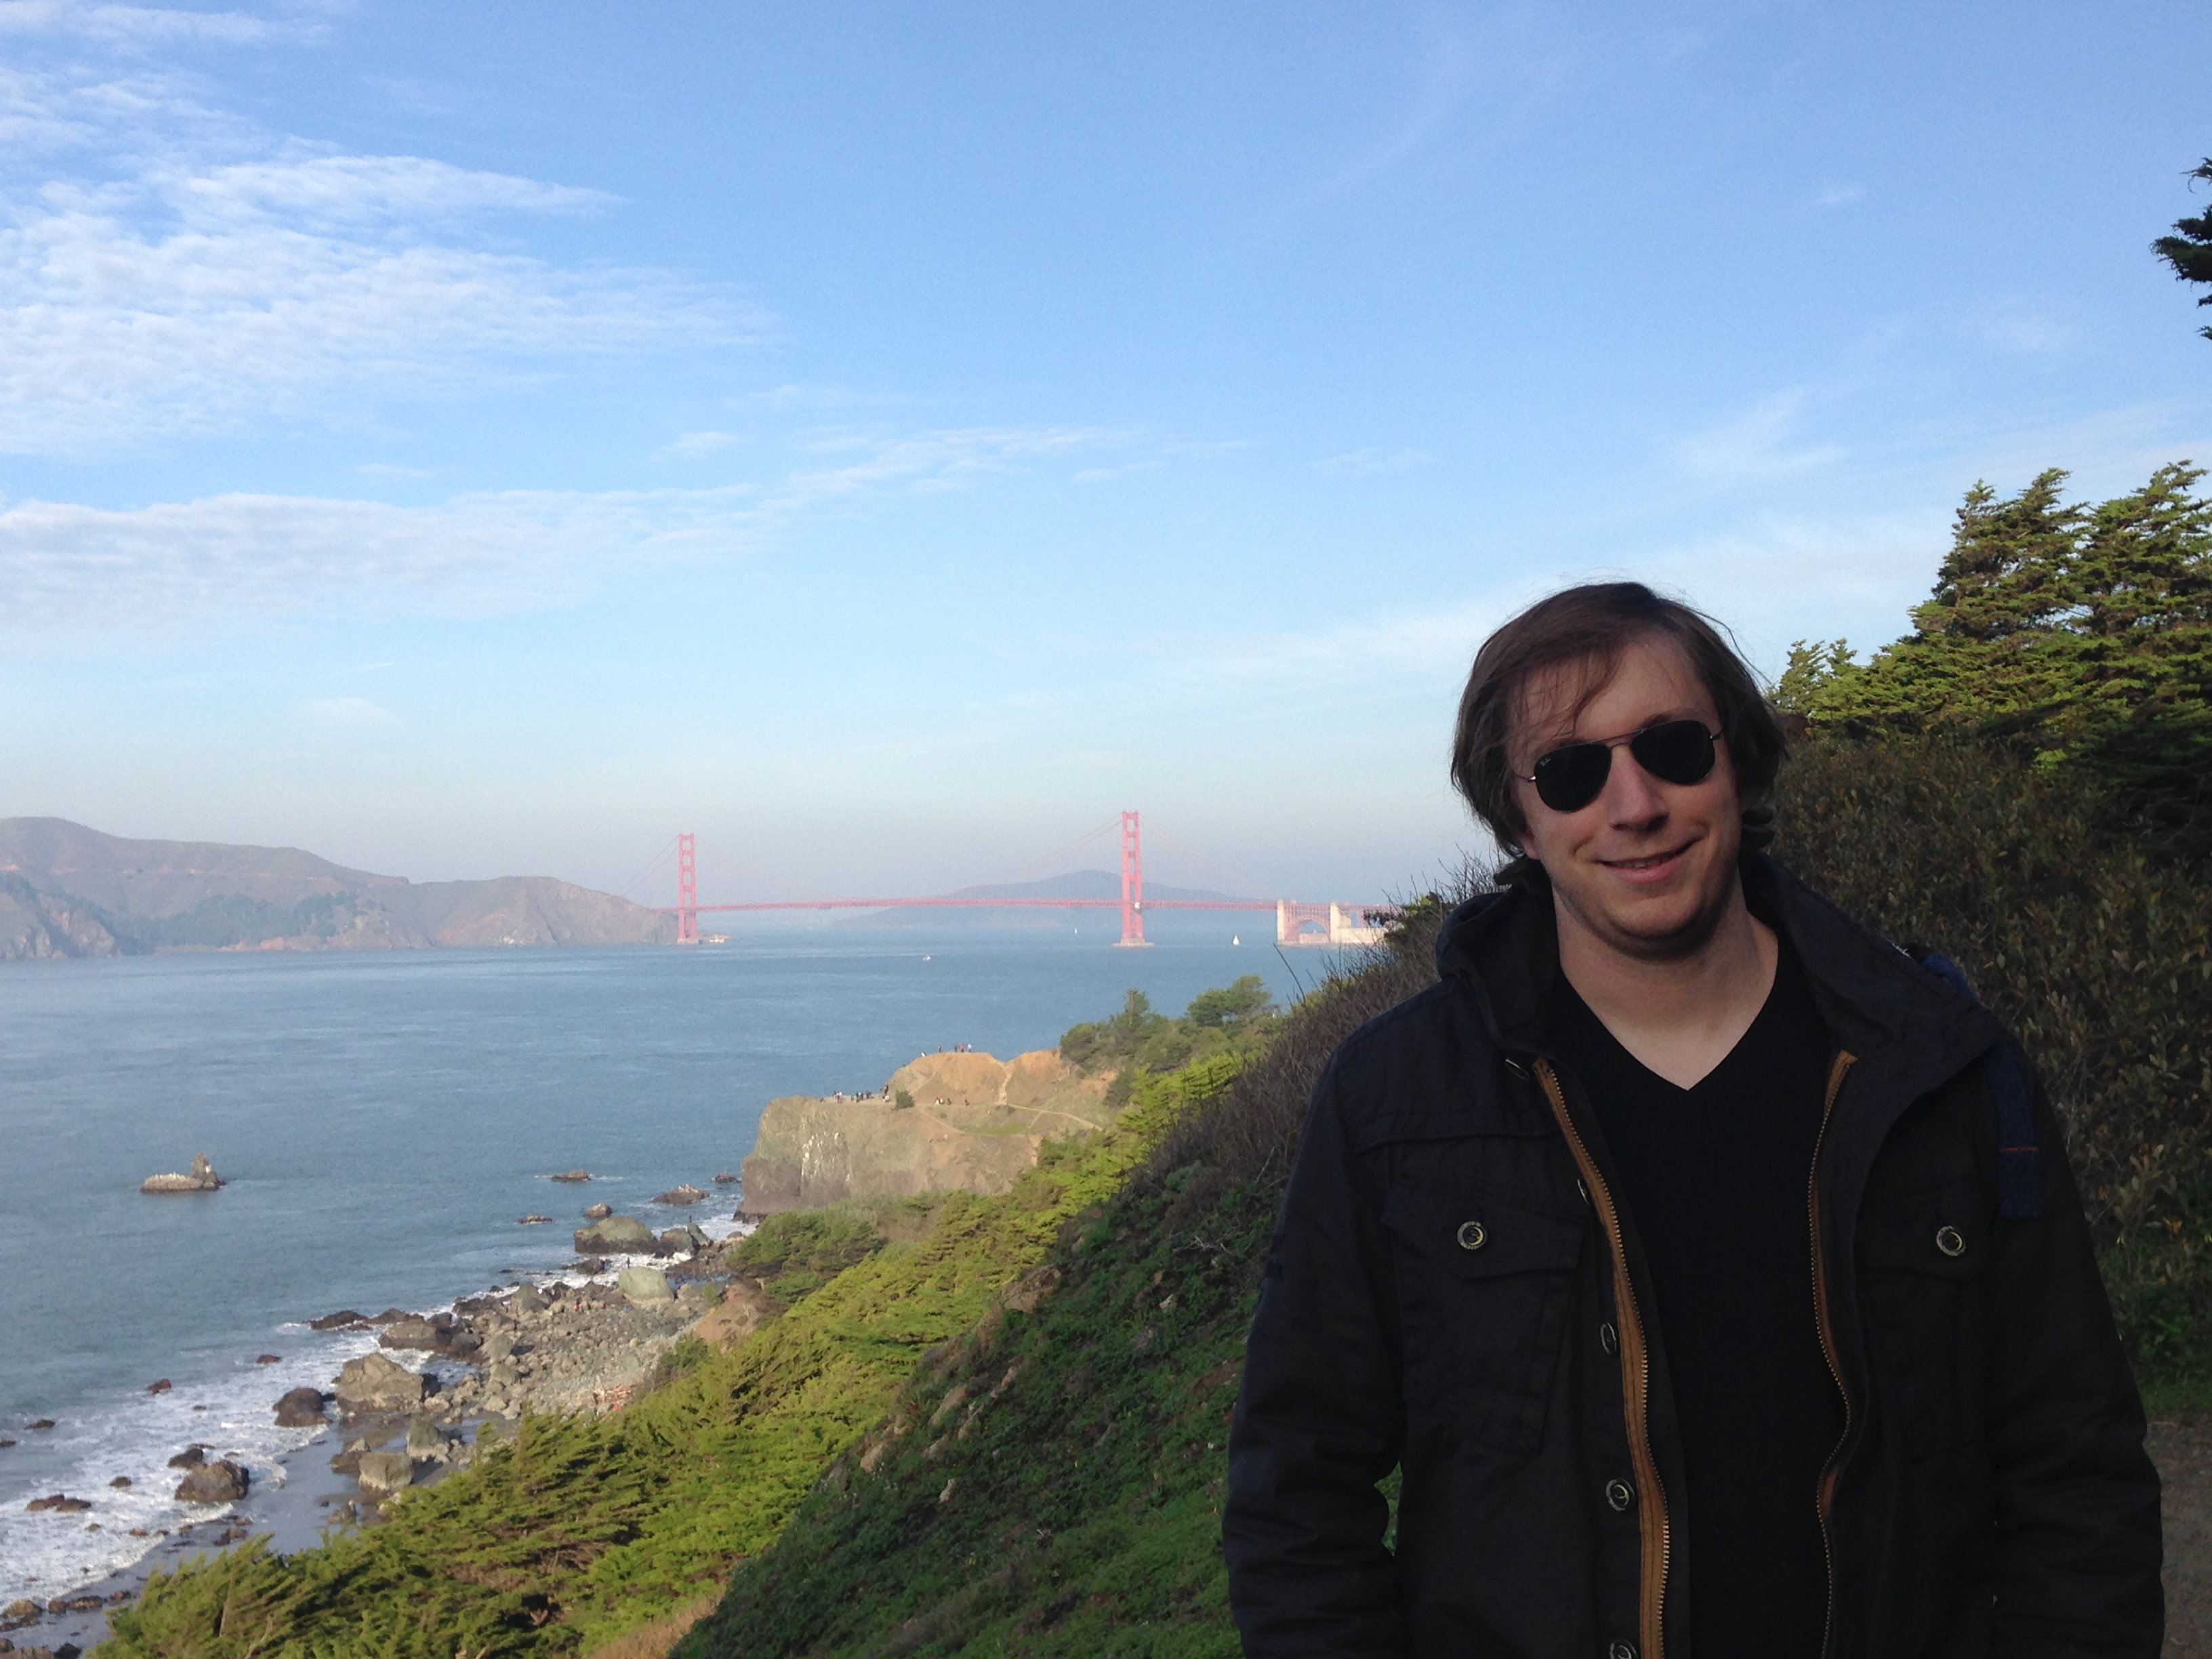 Picture of me standing in front of San Francisco Bay